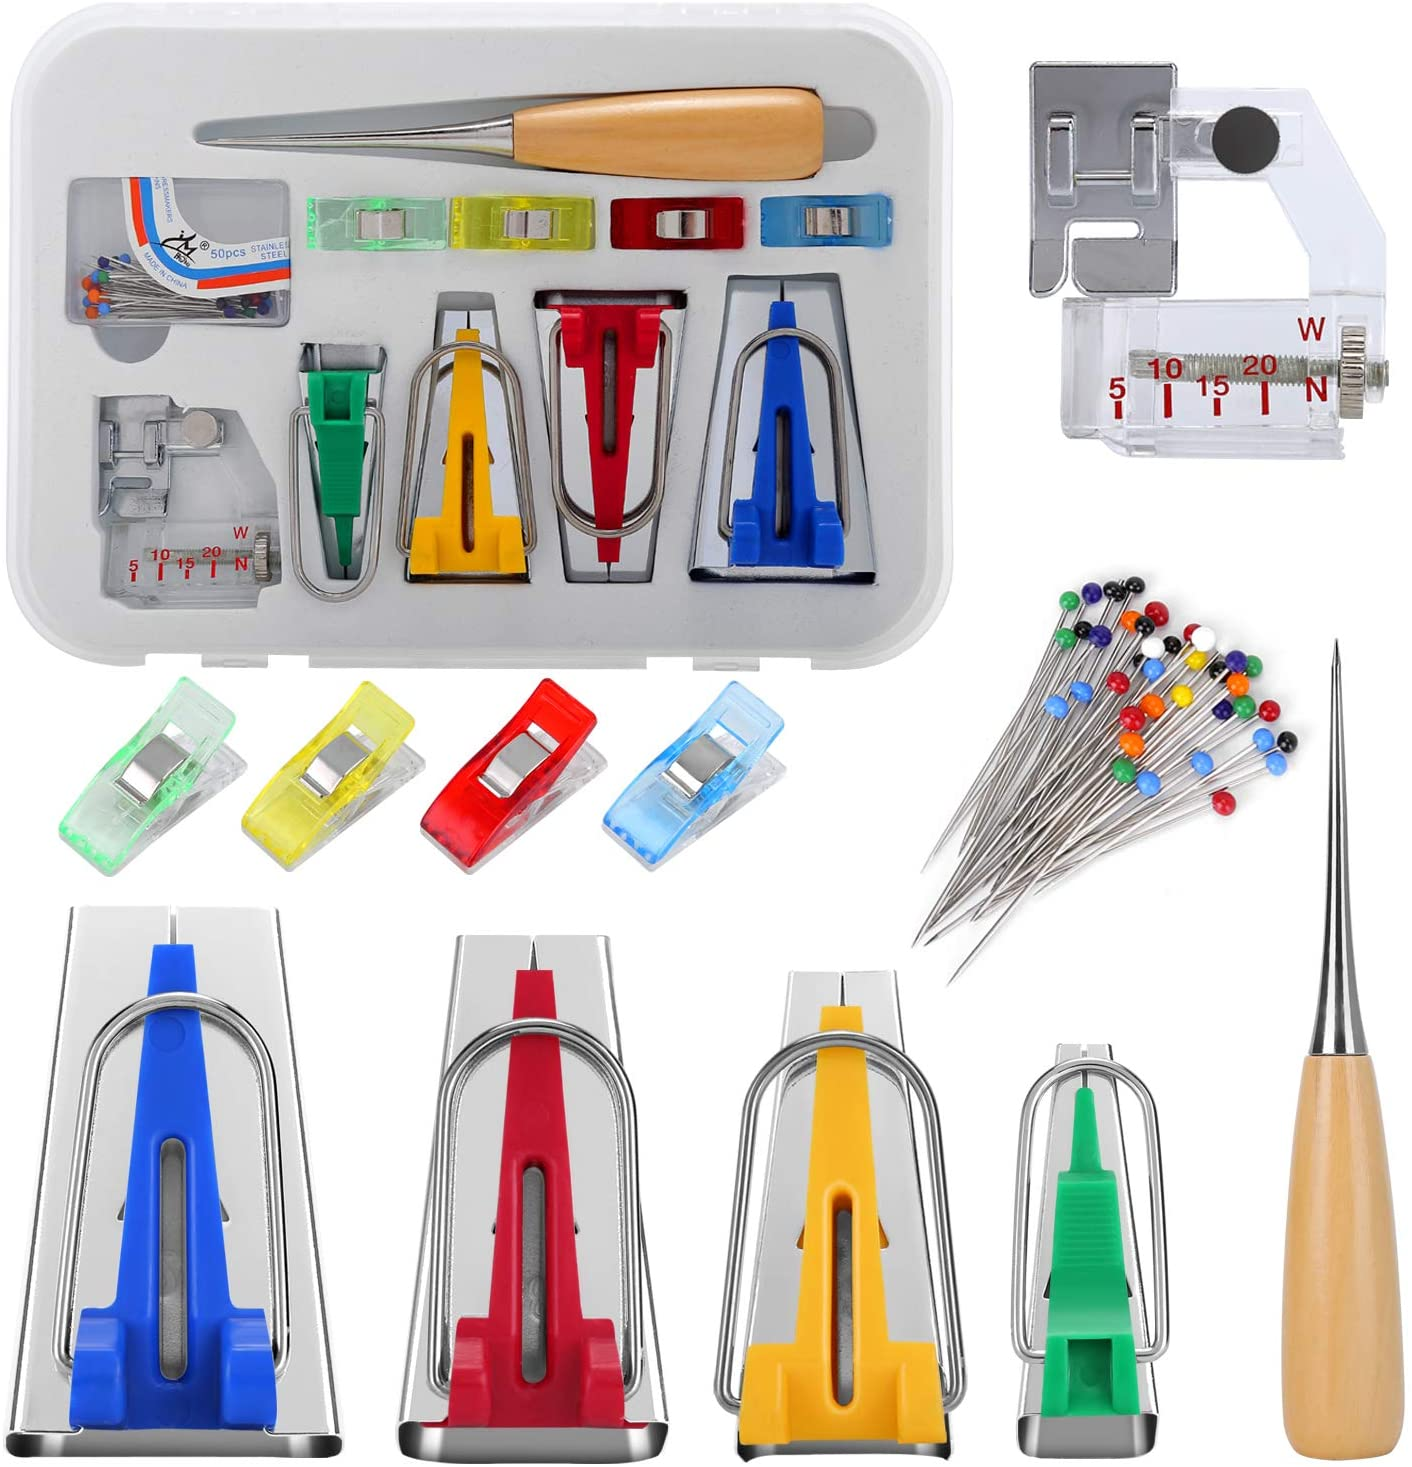 Bias Tape Maker Kit, RELIAN Bias Tape Maker Set with Instruction, Single/Double Fold Fabric Bias Tape Makers Kit Included Sewing Awl, Bead Needles, Adjustable Binder Clip for DIY Quilting Sewing